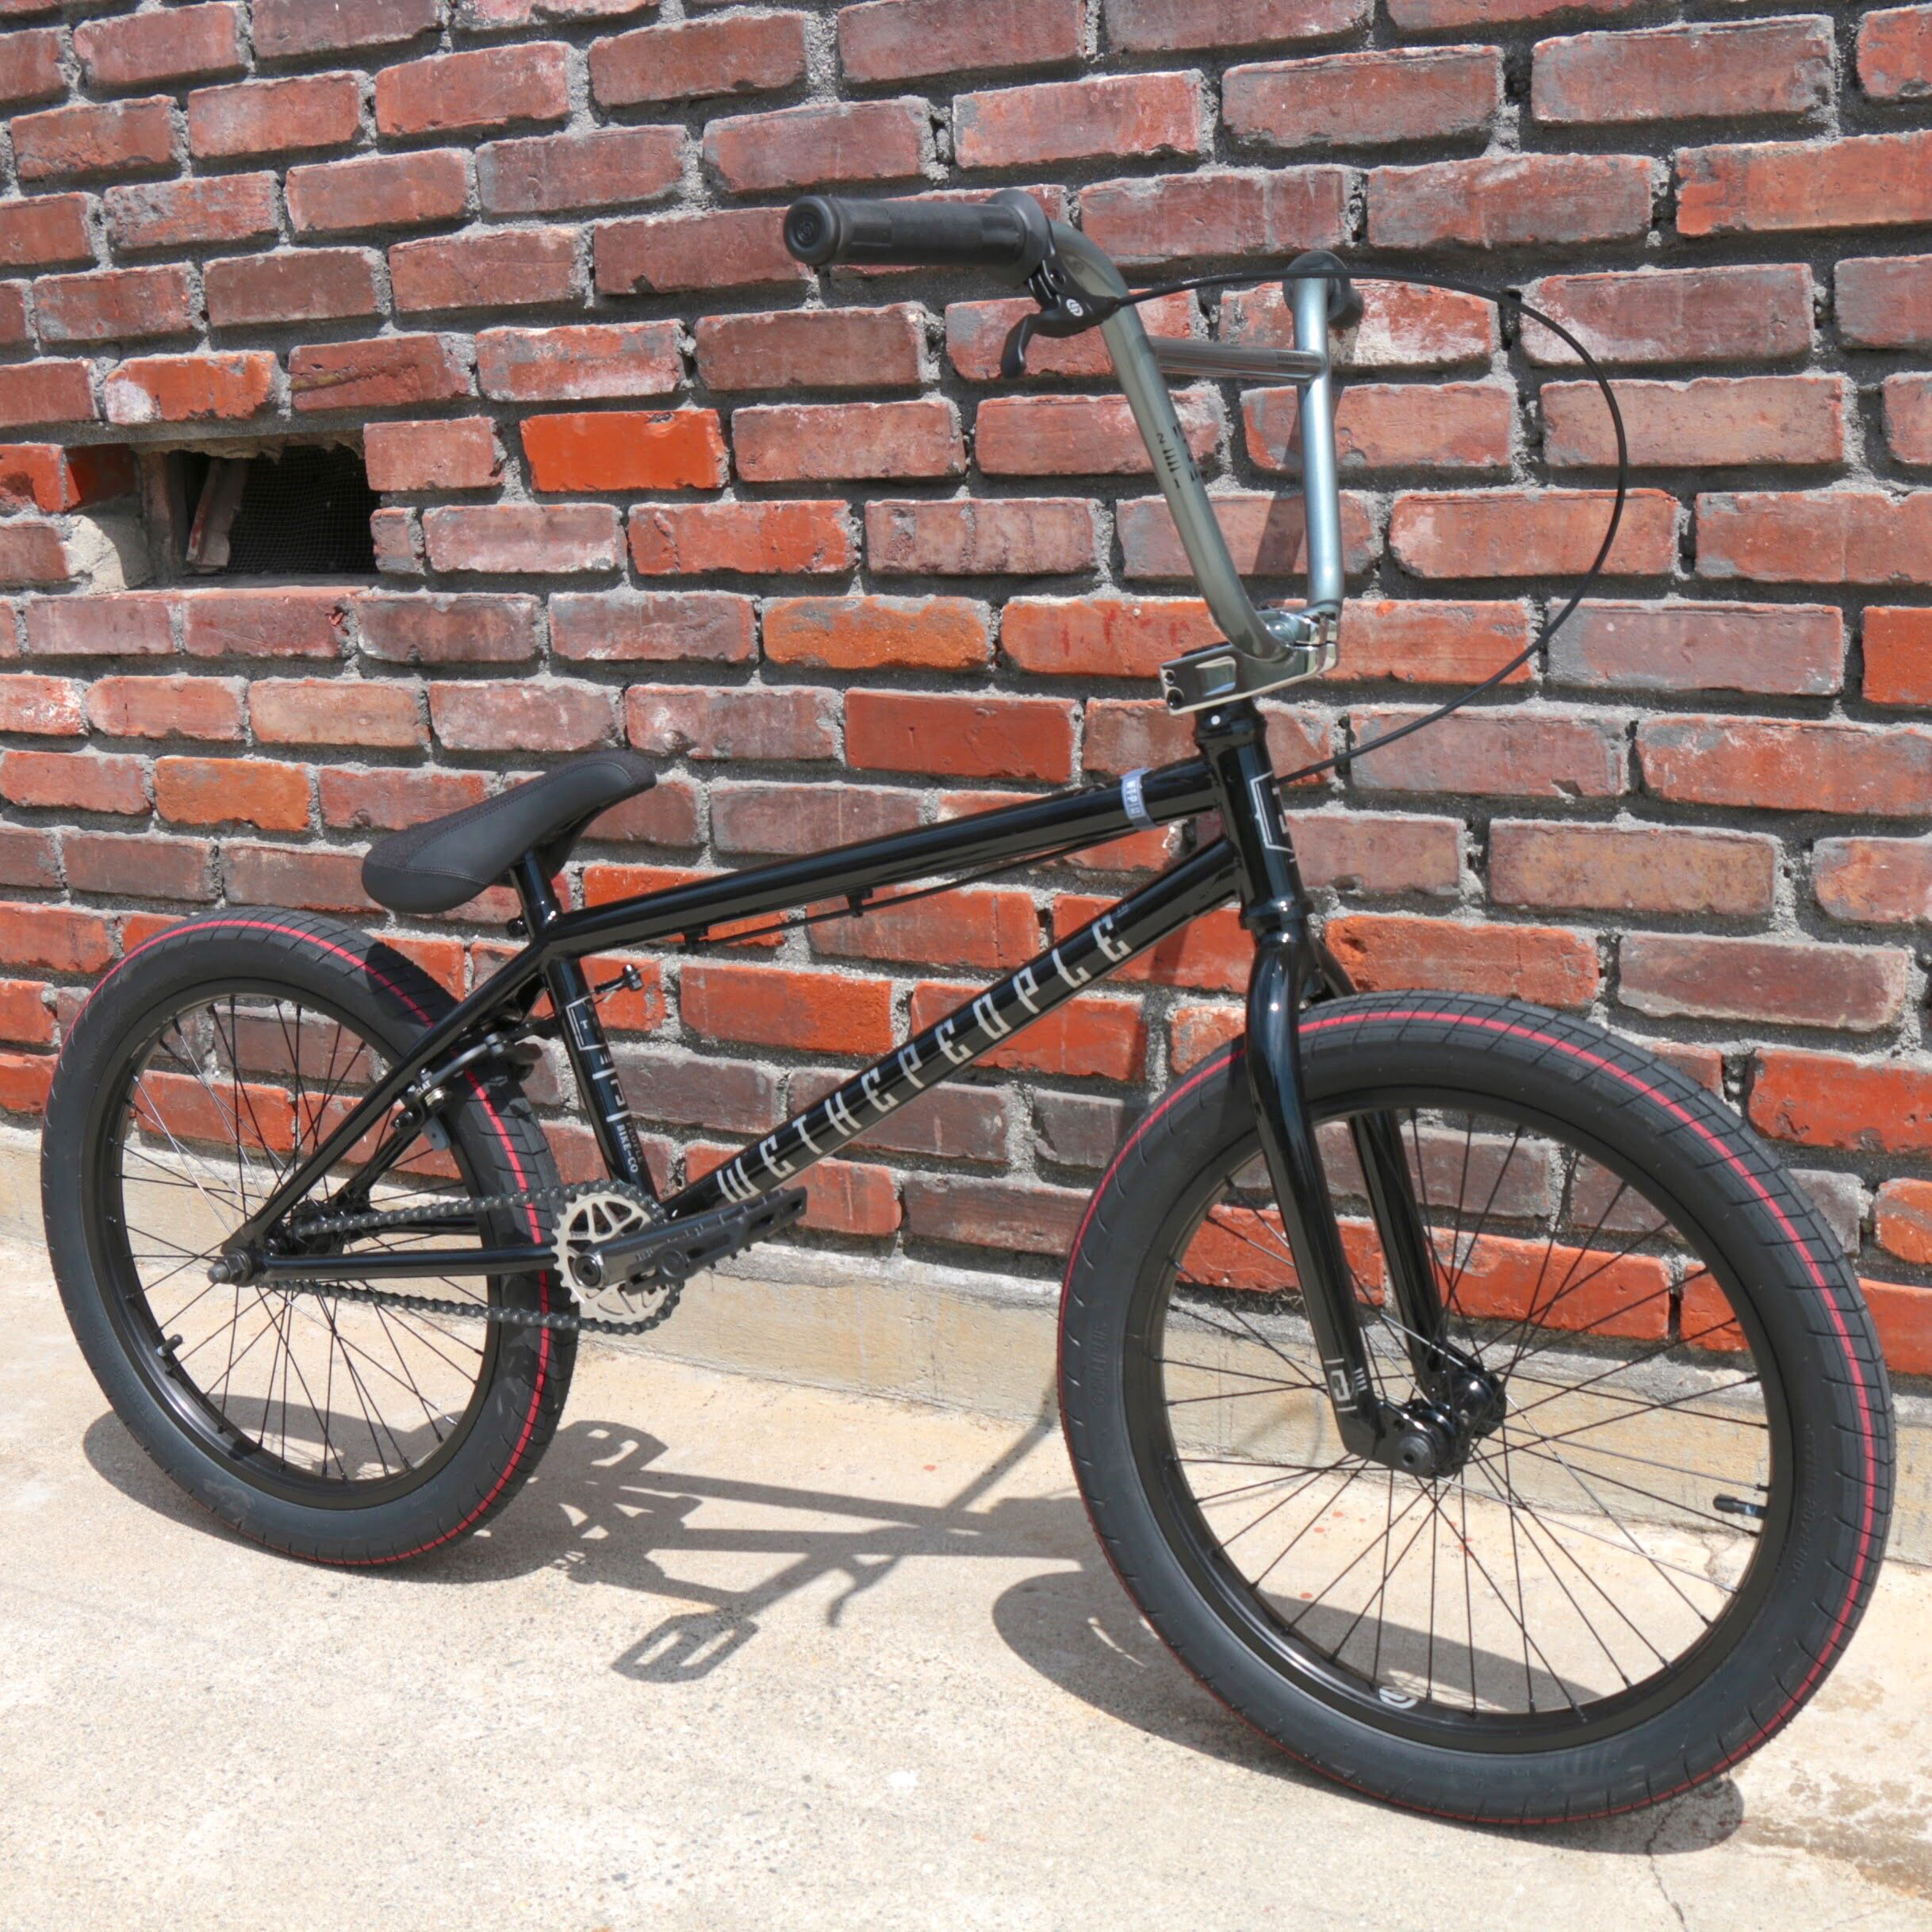 One Left Grab The Last Wethepeoplebmx Justice Bike In Graphite Black Tap The Photo To Order Online Or Pick One Up In S We The People Bmx Bmx Street Bmx Shop